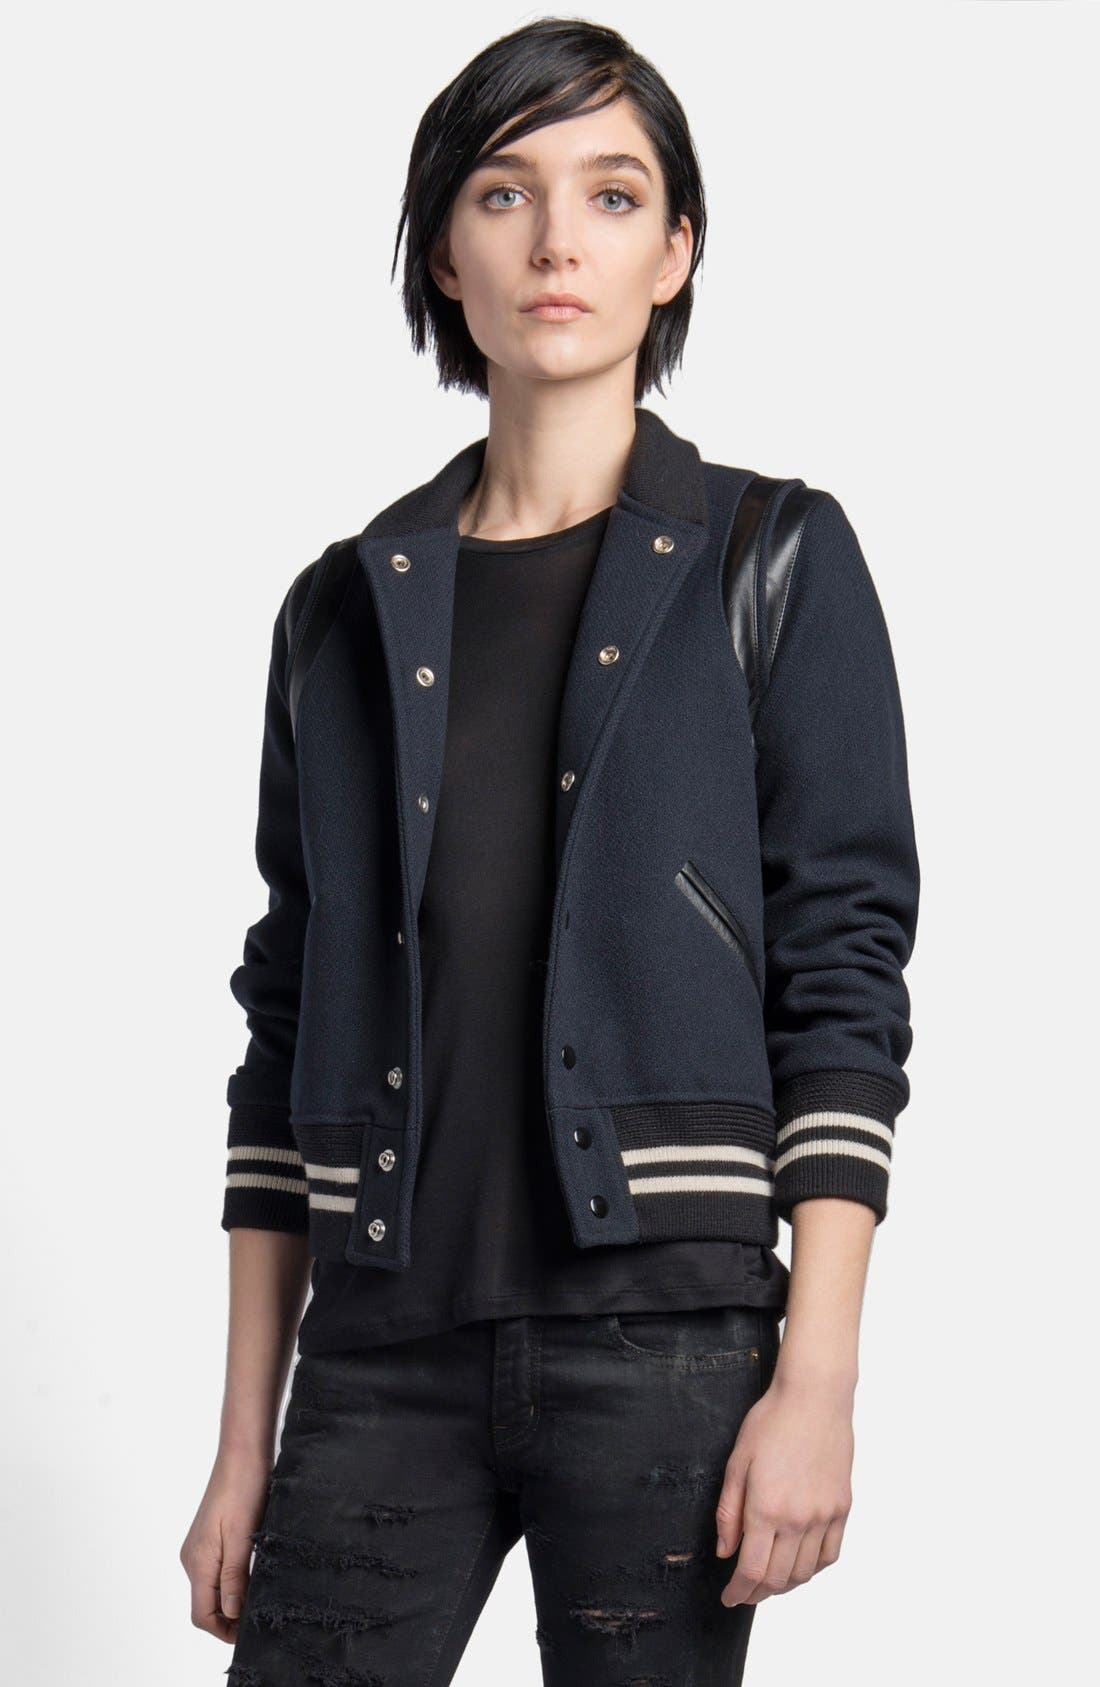 Main Image - Saint Laurent 'Teddy' Leather Trim Bomber Jacket